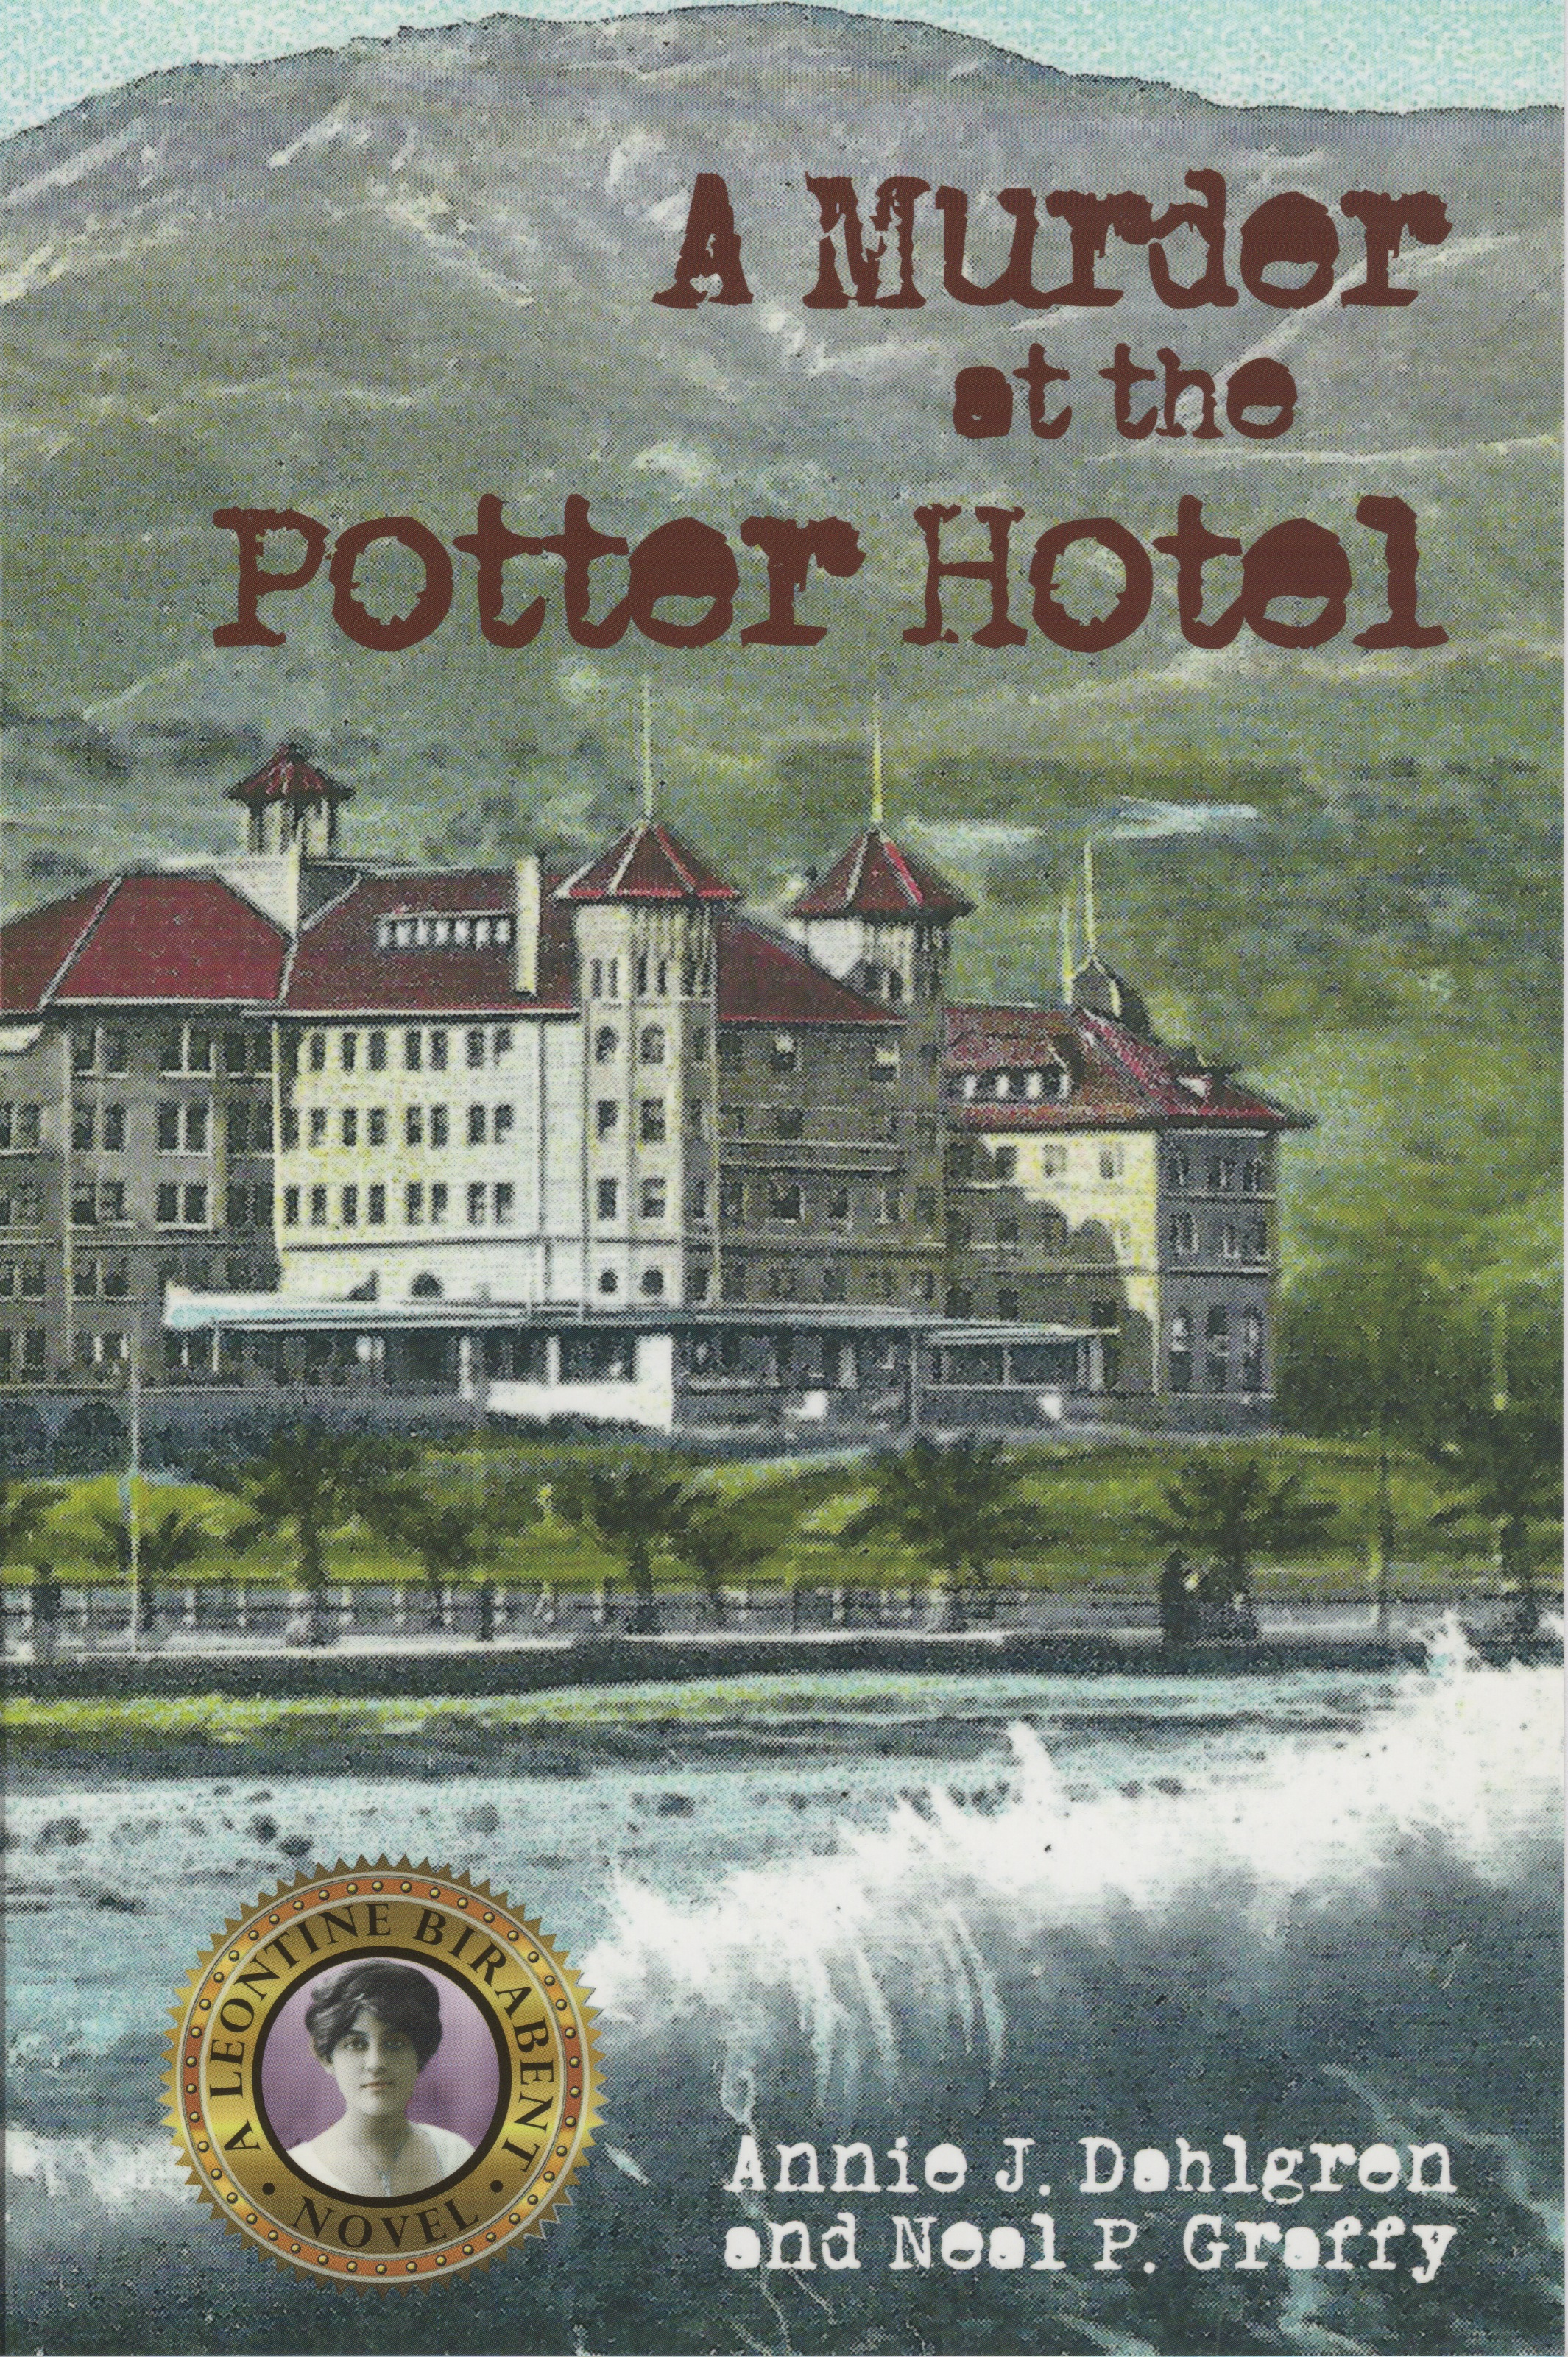 A Murder at the Potter Hotel, by Annie J Dahlgren and Neal P. Graffy, soft cover